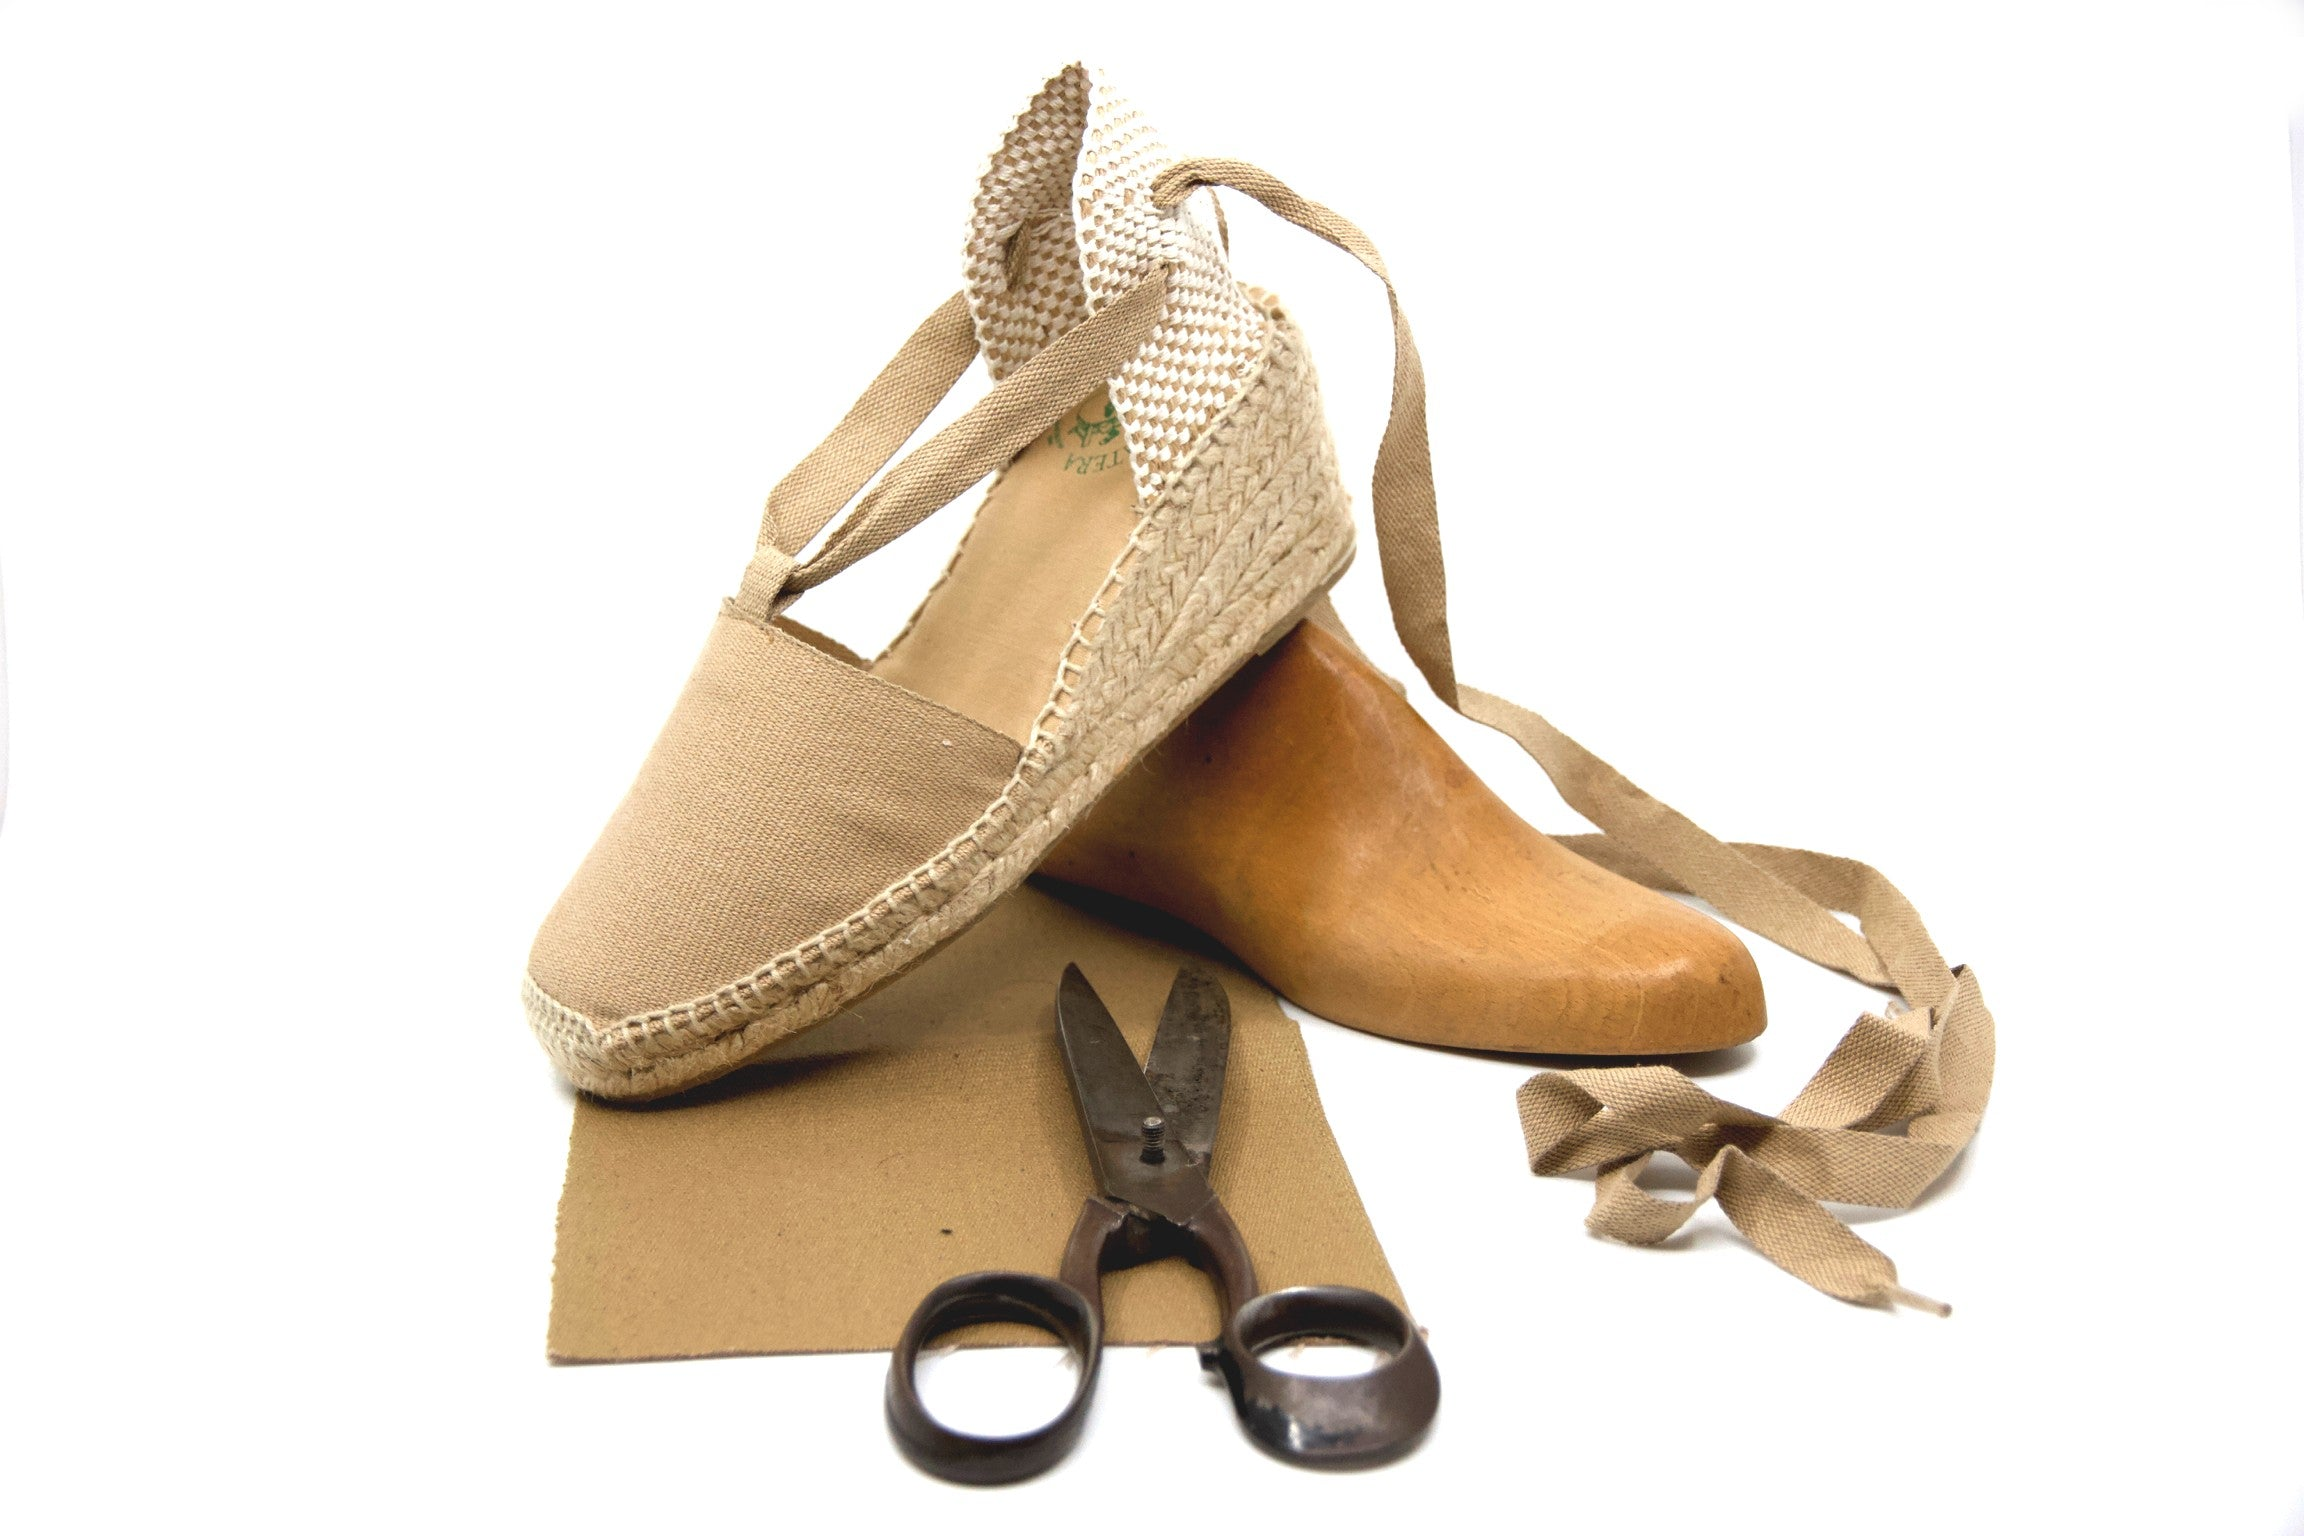 How to cClean Espadrille Sandals | La Manual Alpargatera